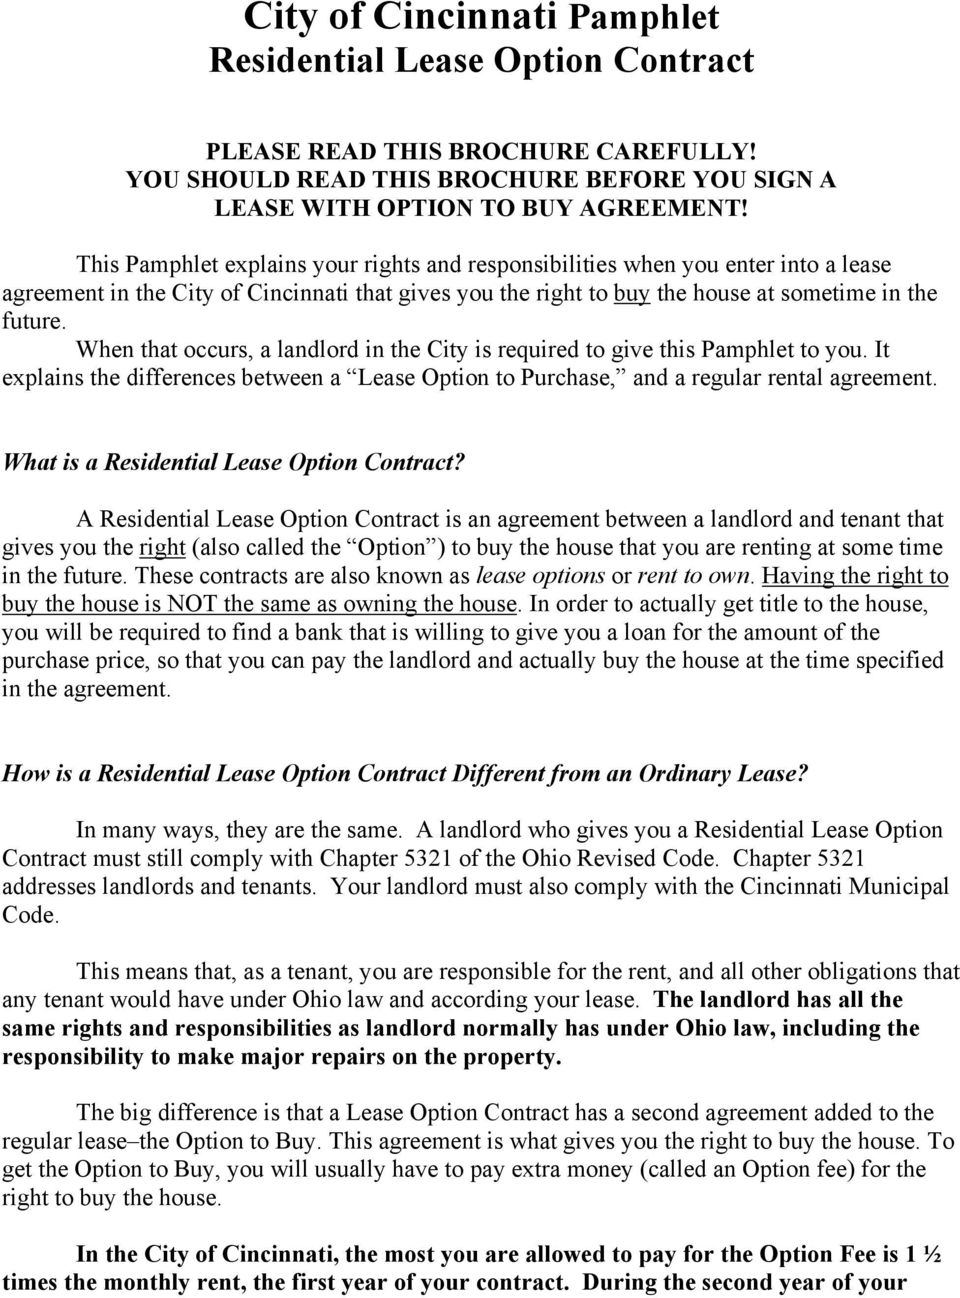 When that occurs, a landlord in the City is required to give this Pamphlet to you. It explains the differences between a Lease Option to Purchase, and a regular rental agreement.